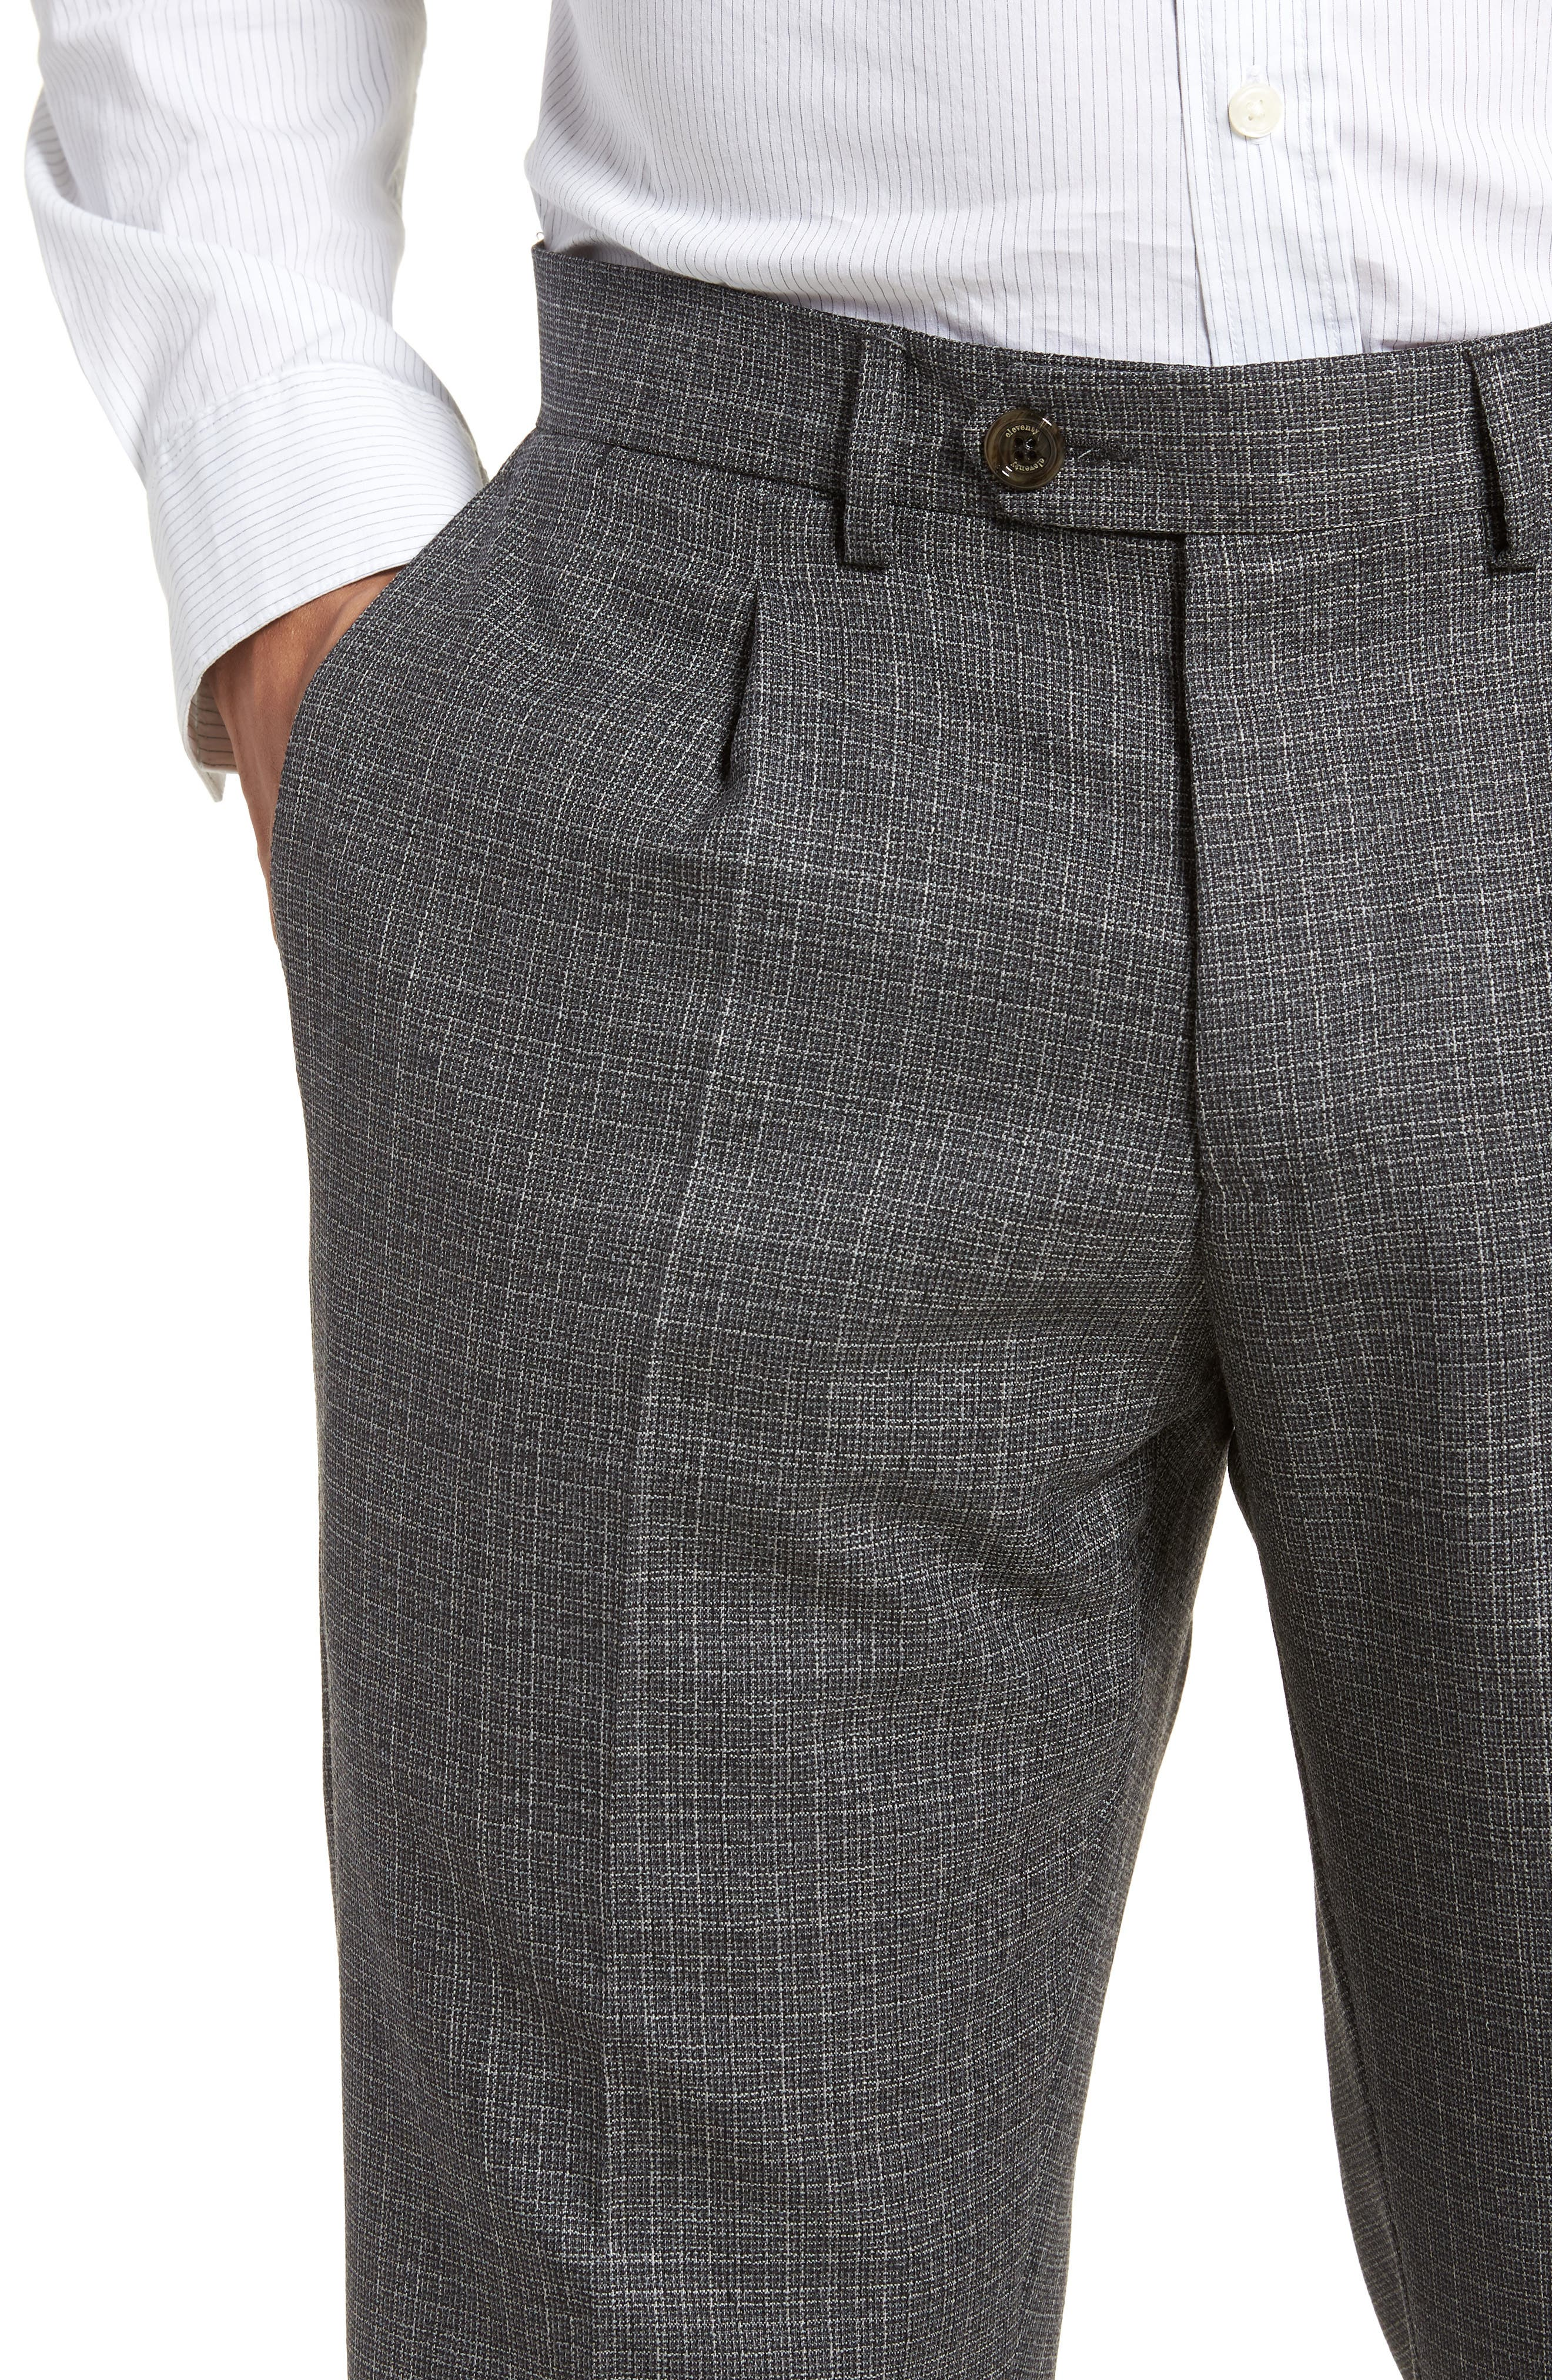 Pleated Check Wool Trousers,                             Alternate thumbnail 4, color,